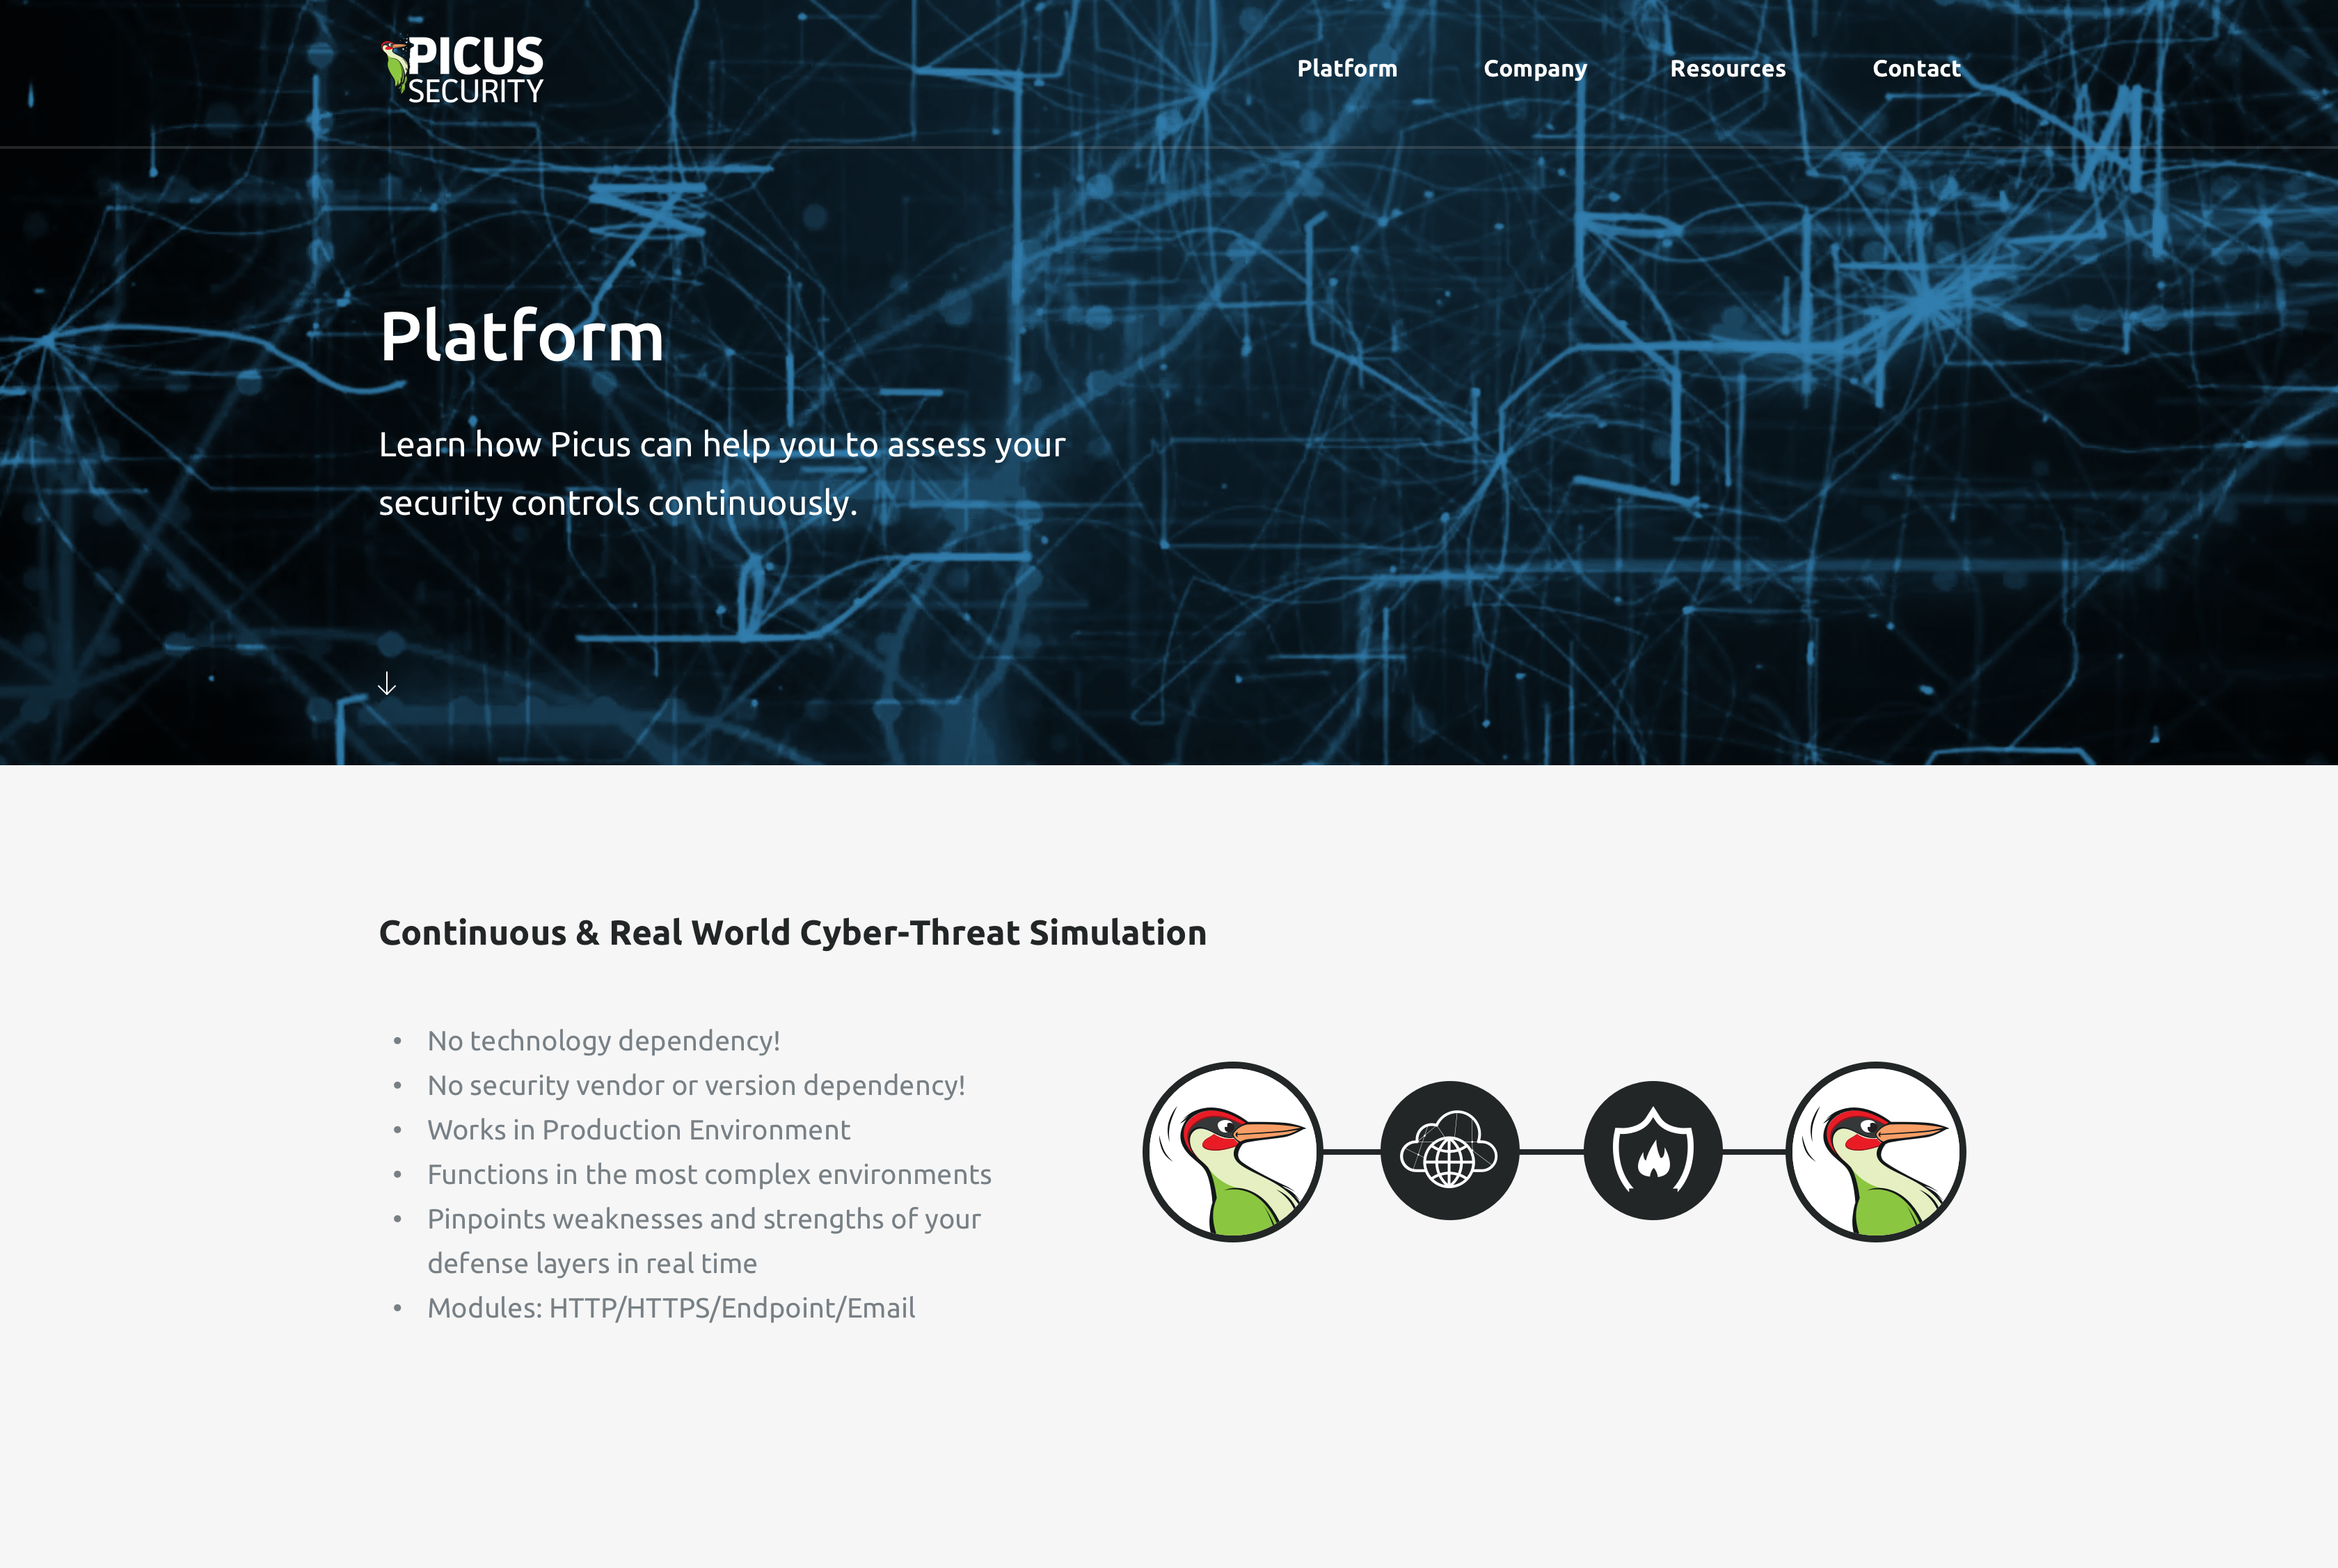 Picus Security platform page